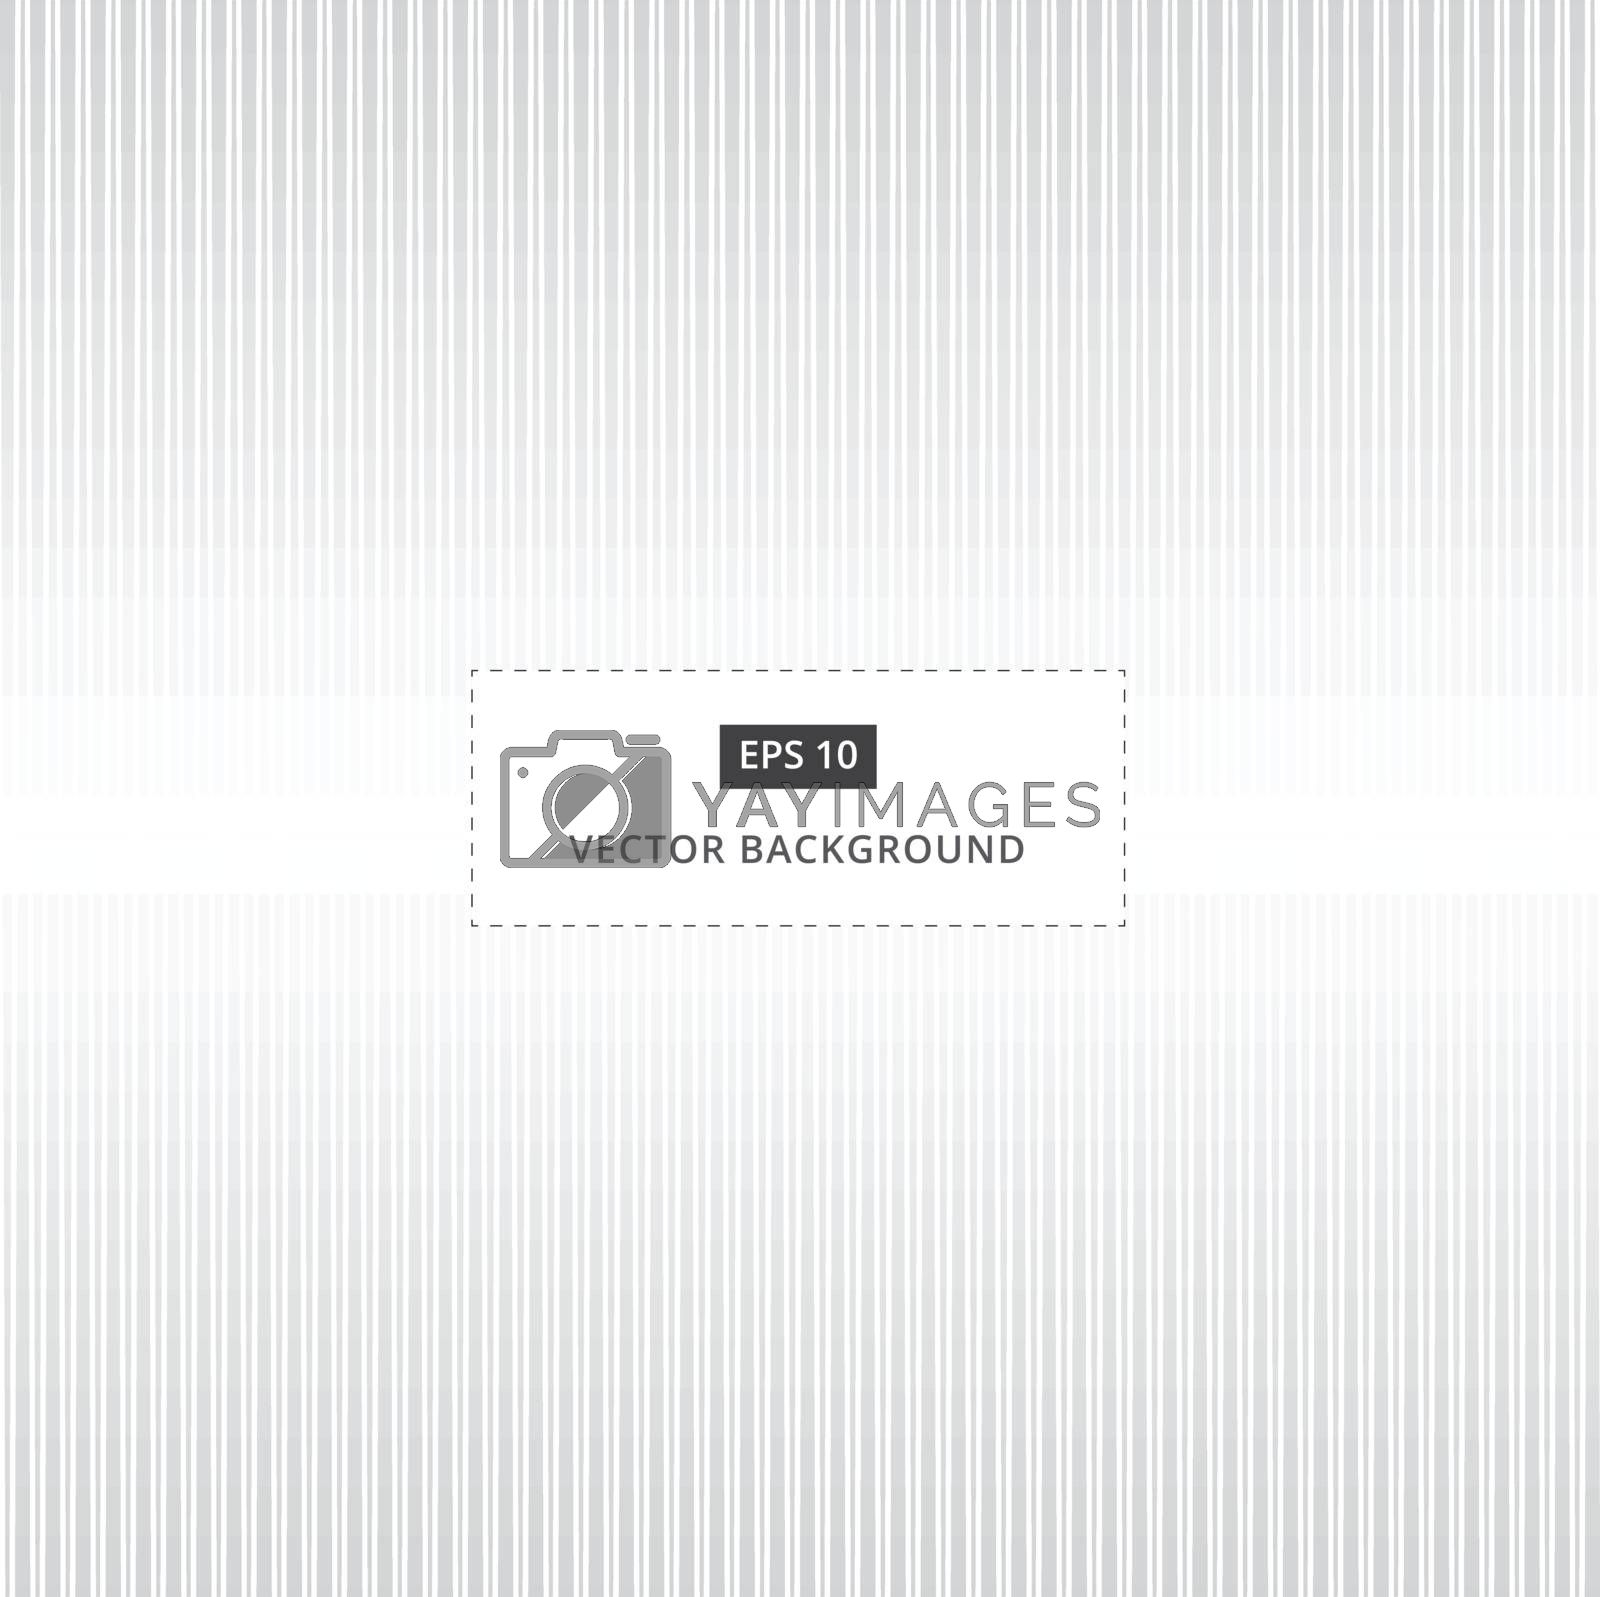 Abstract grey and white background of vertical straight lines pattern seamless vector